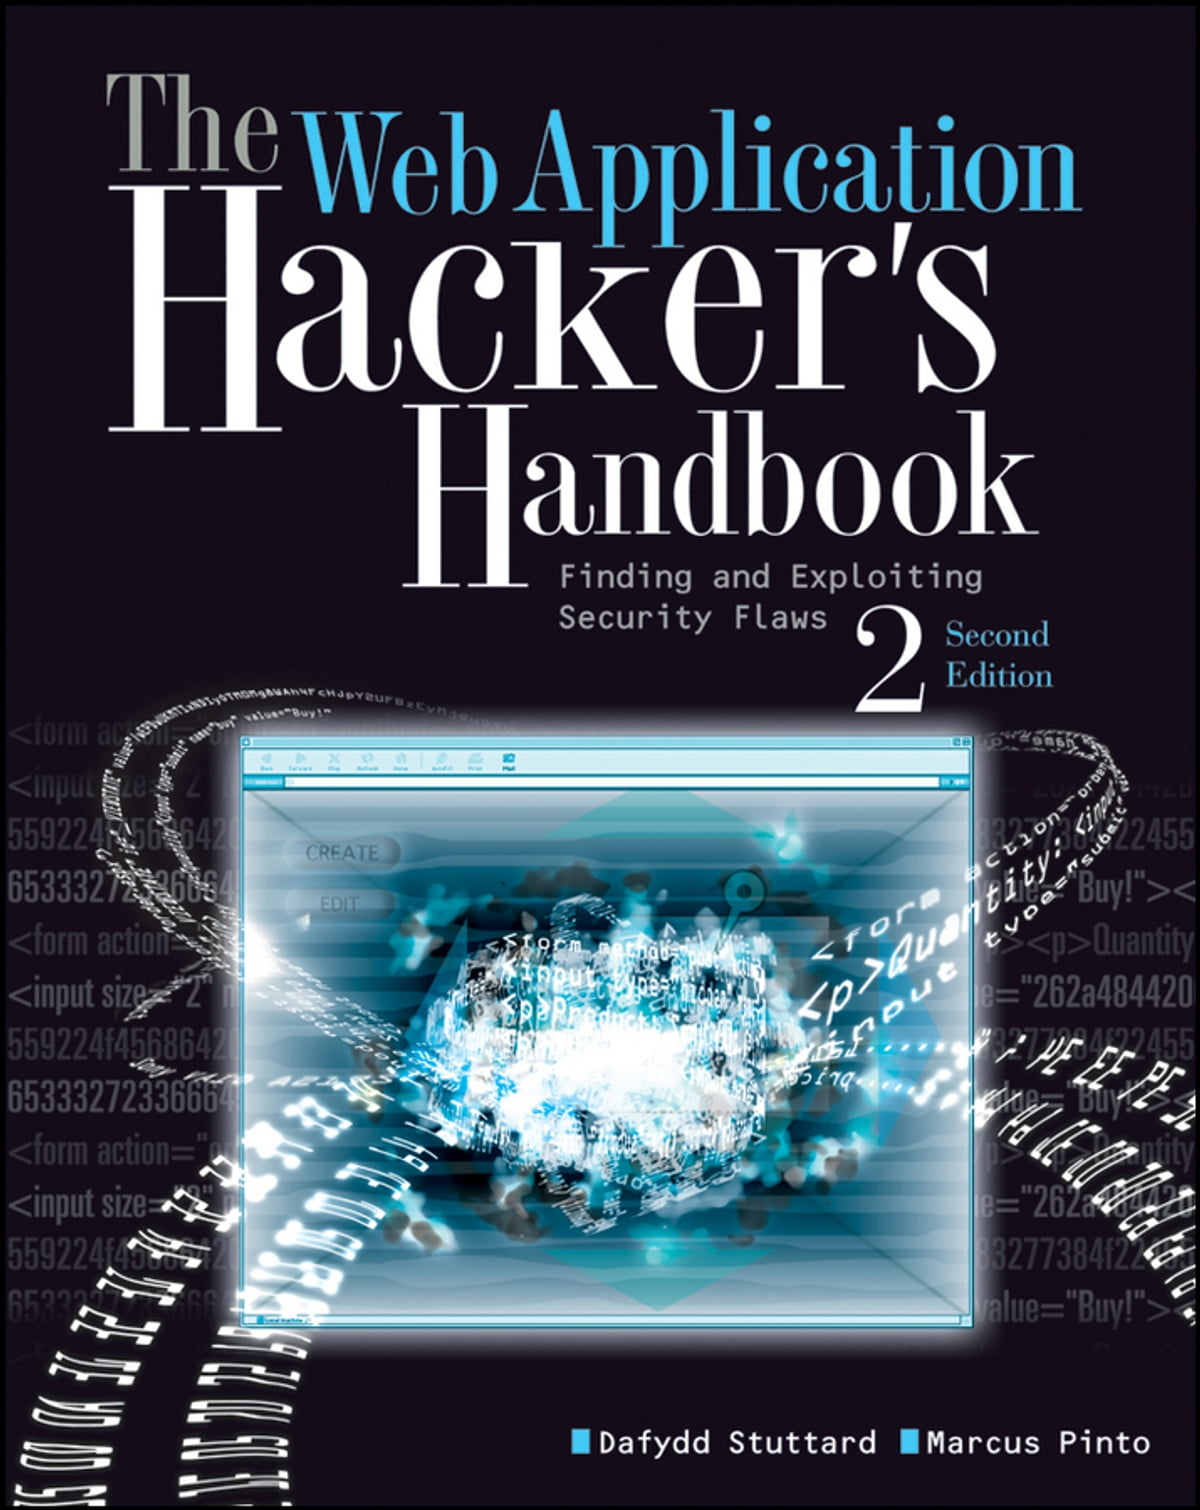 The Web Application Hacker's Handbook eBook by Dafydd Stuttard -  9781118175248 | Rakuten Kobo United States